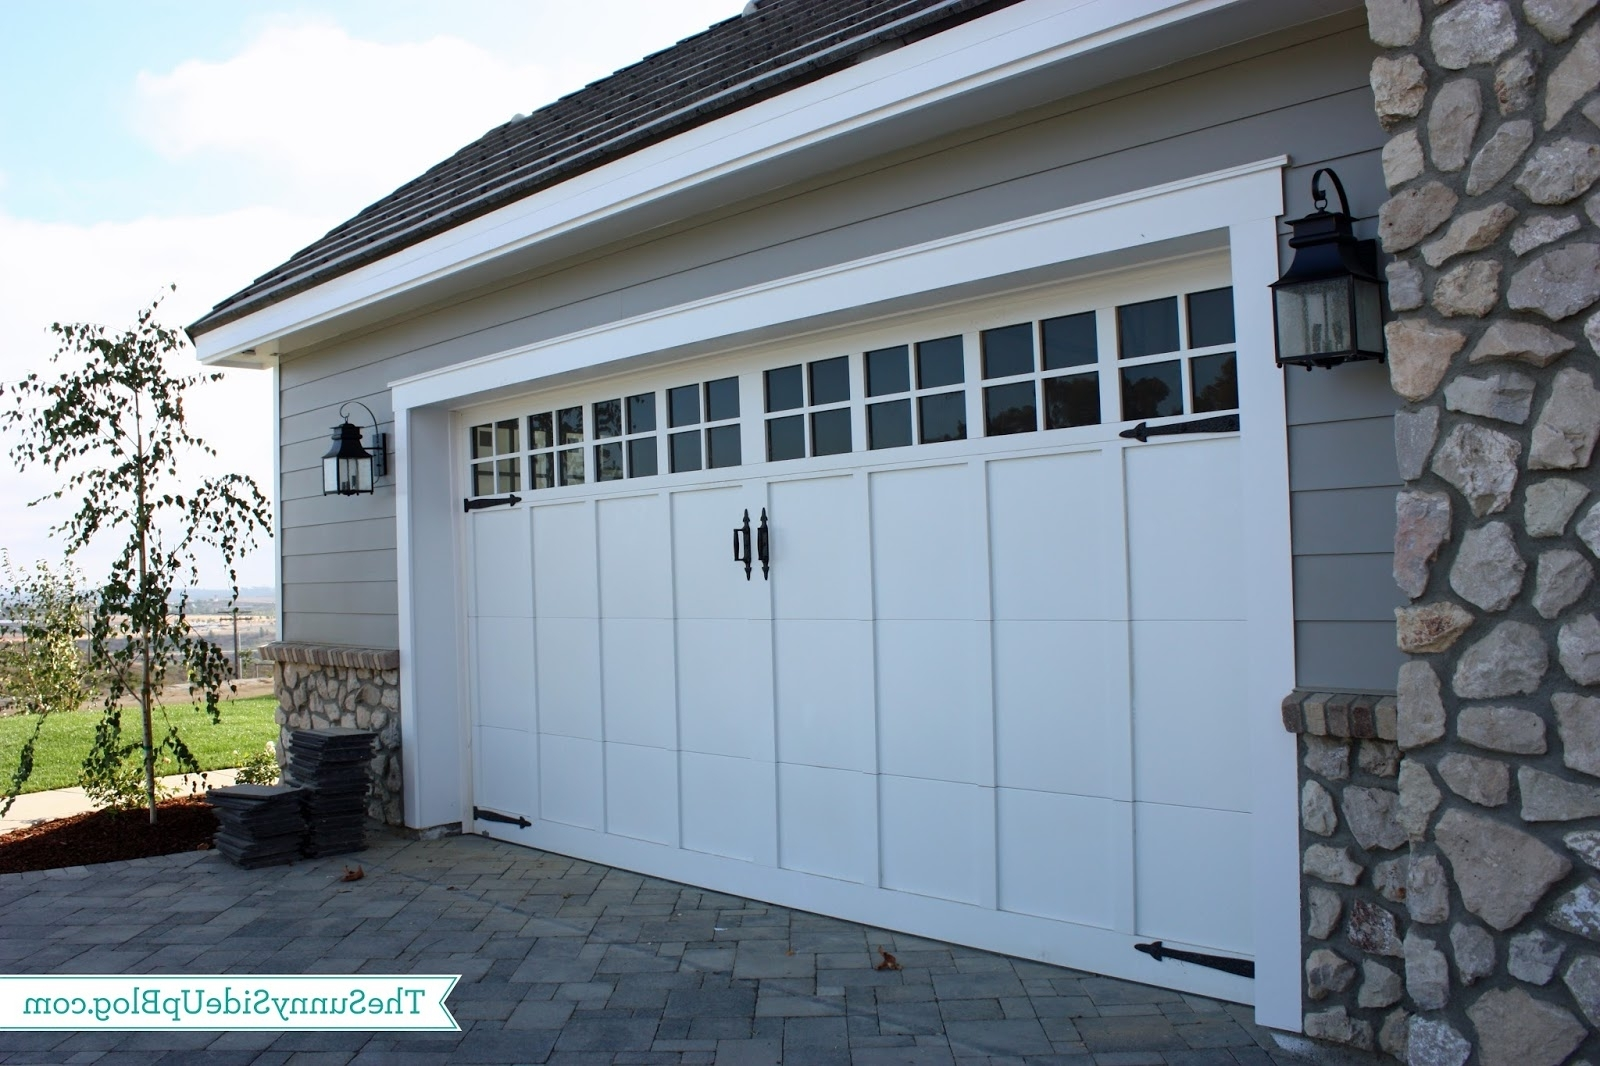 Outdoor Lanterns For Garage In Well Known 42 Garage Door Lanterns, Georgian Garage Door Outdoor Light (Gallery 2 of 20)